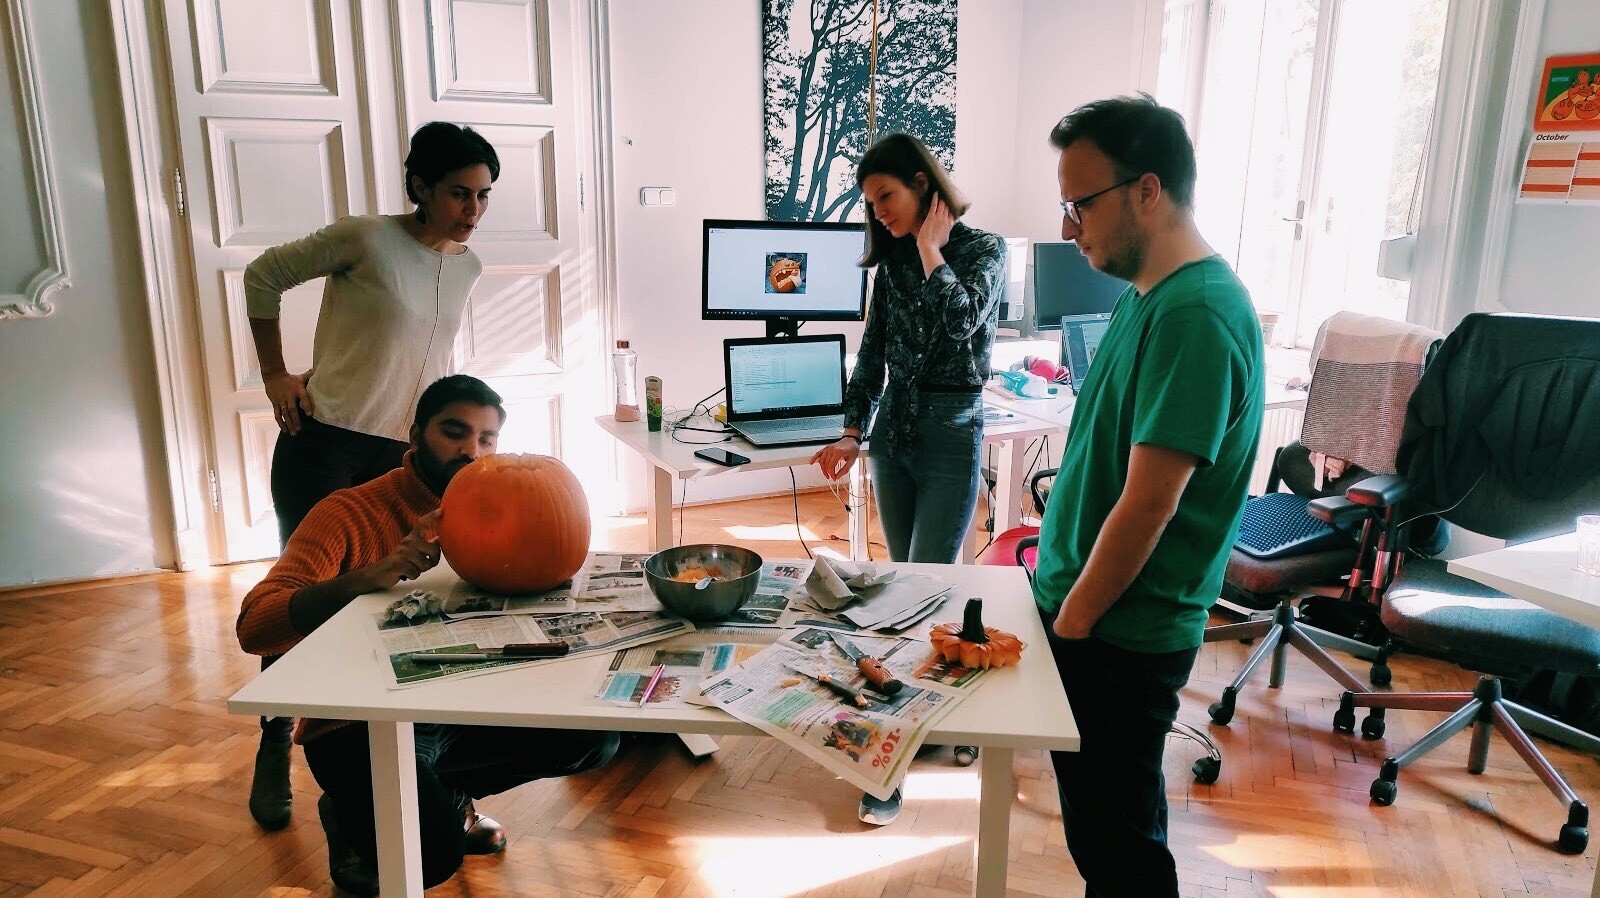 Our project management team carving their pumpkin